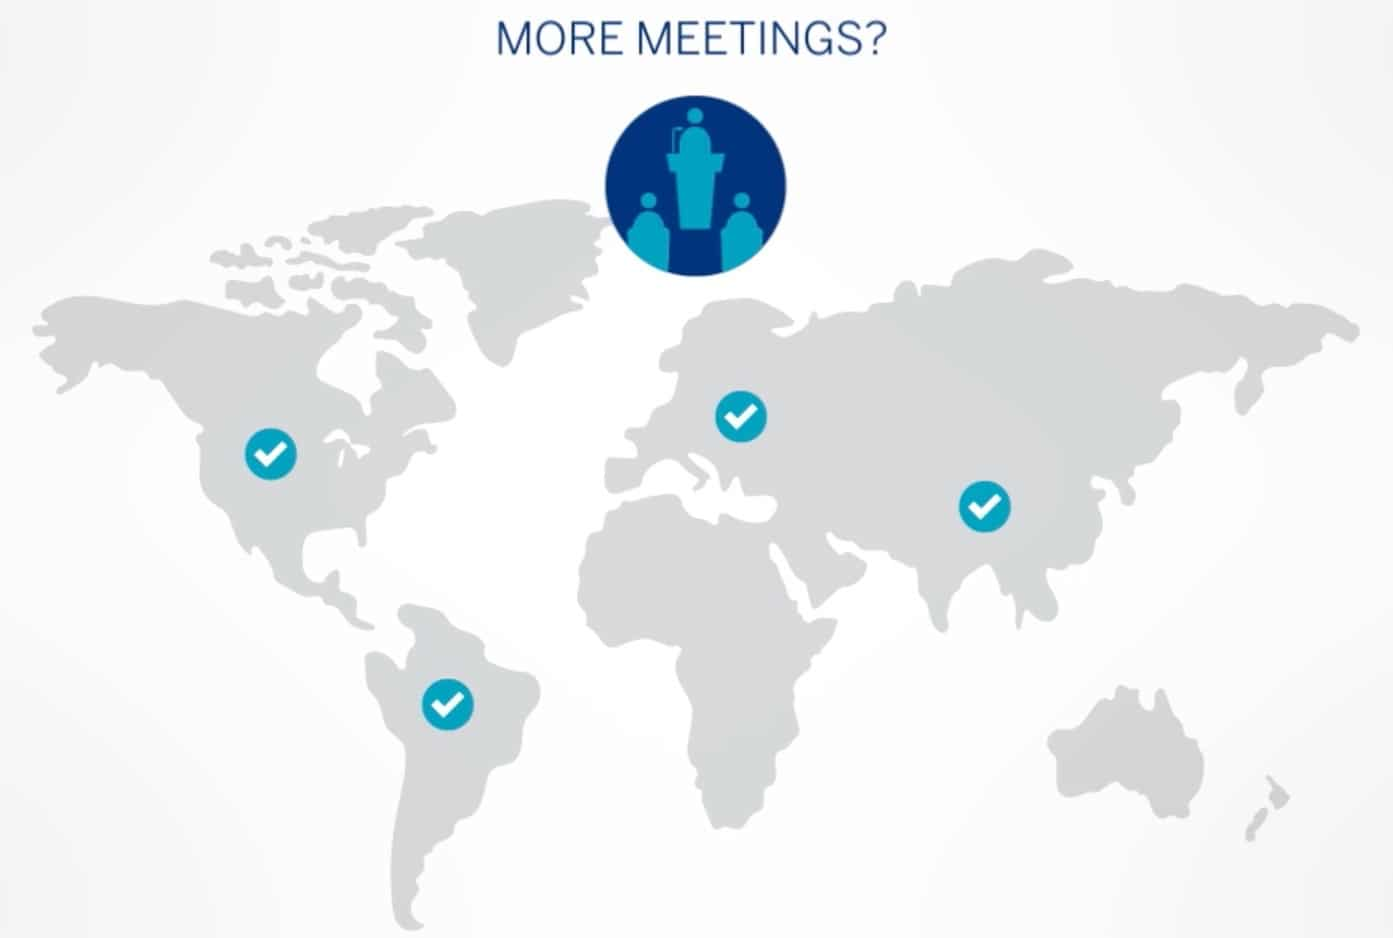 AMEX Meetings Forecast for 2016